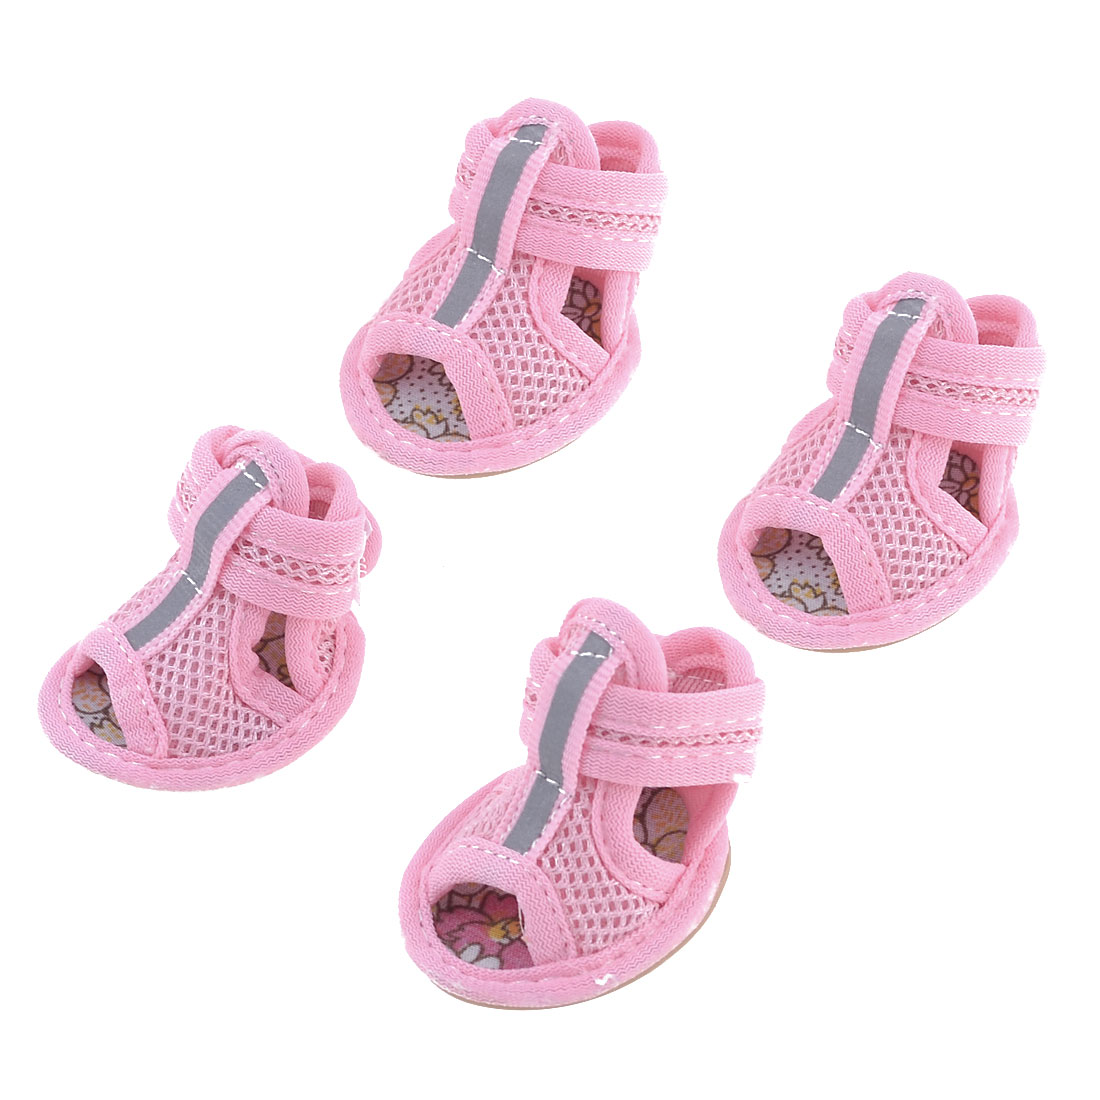 2 Pairs Rubber Sole Pink Mesh Sandals Yorkie Chihuaha Dog Shoes Size M